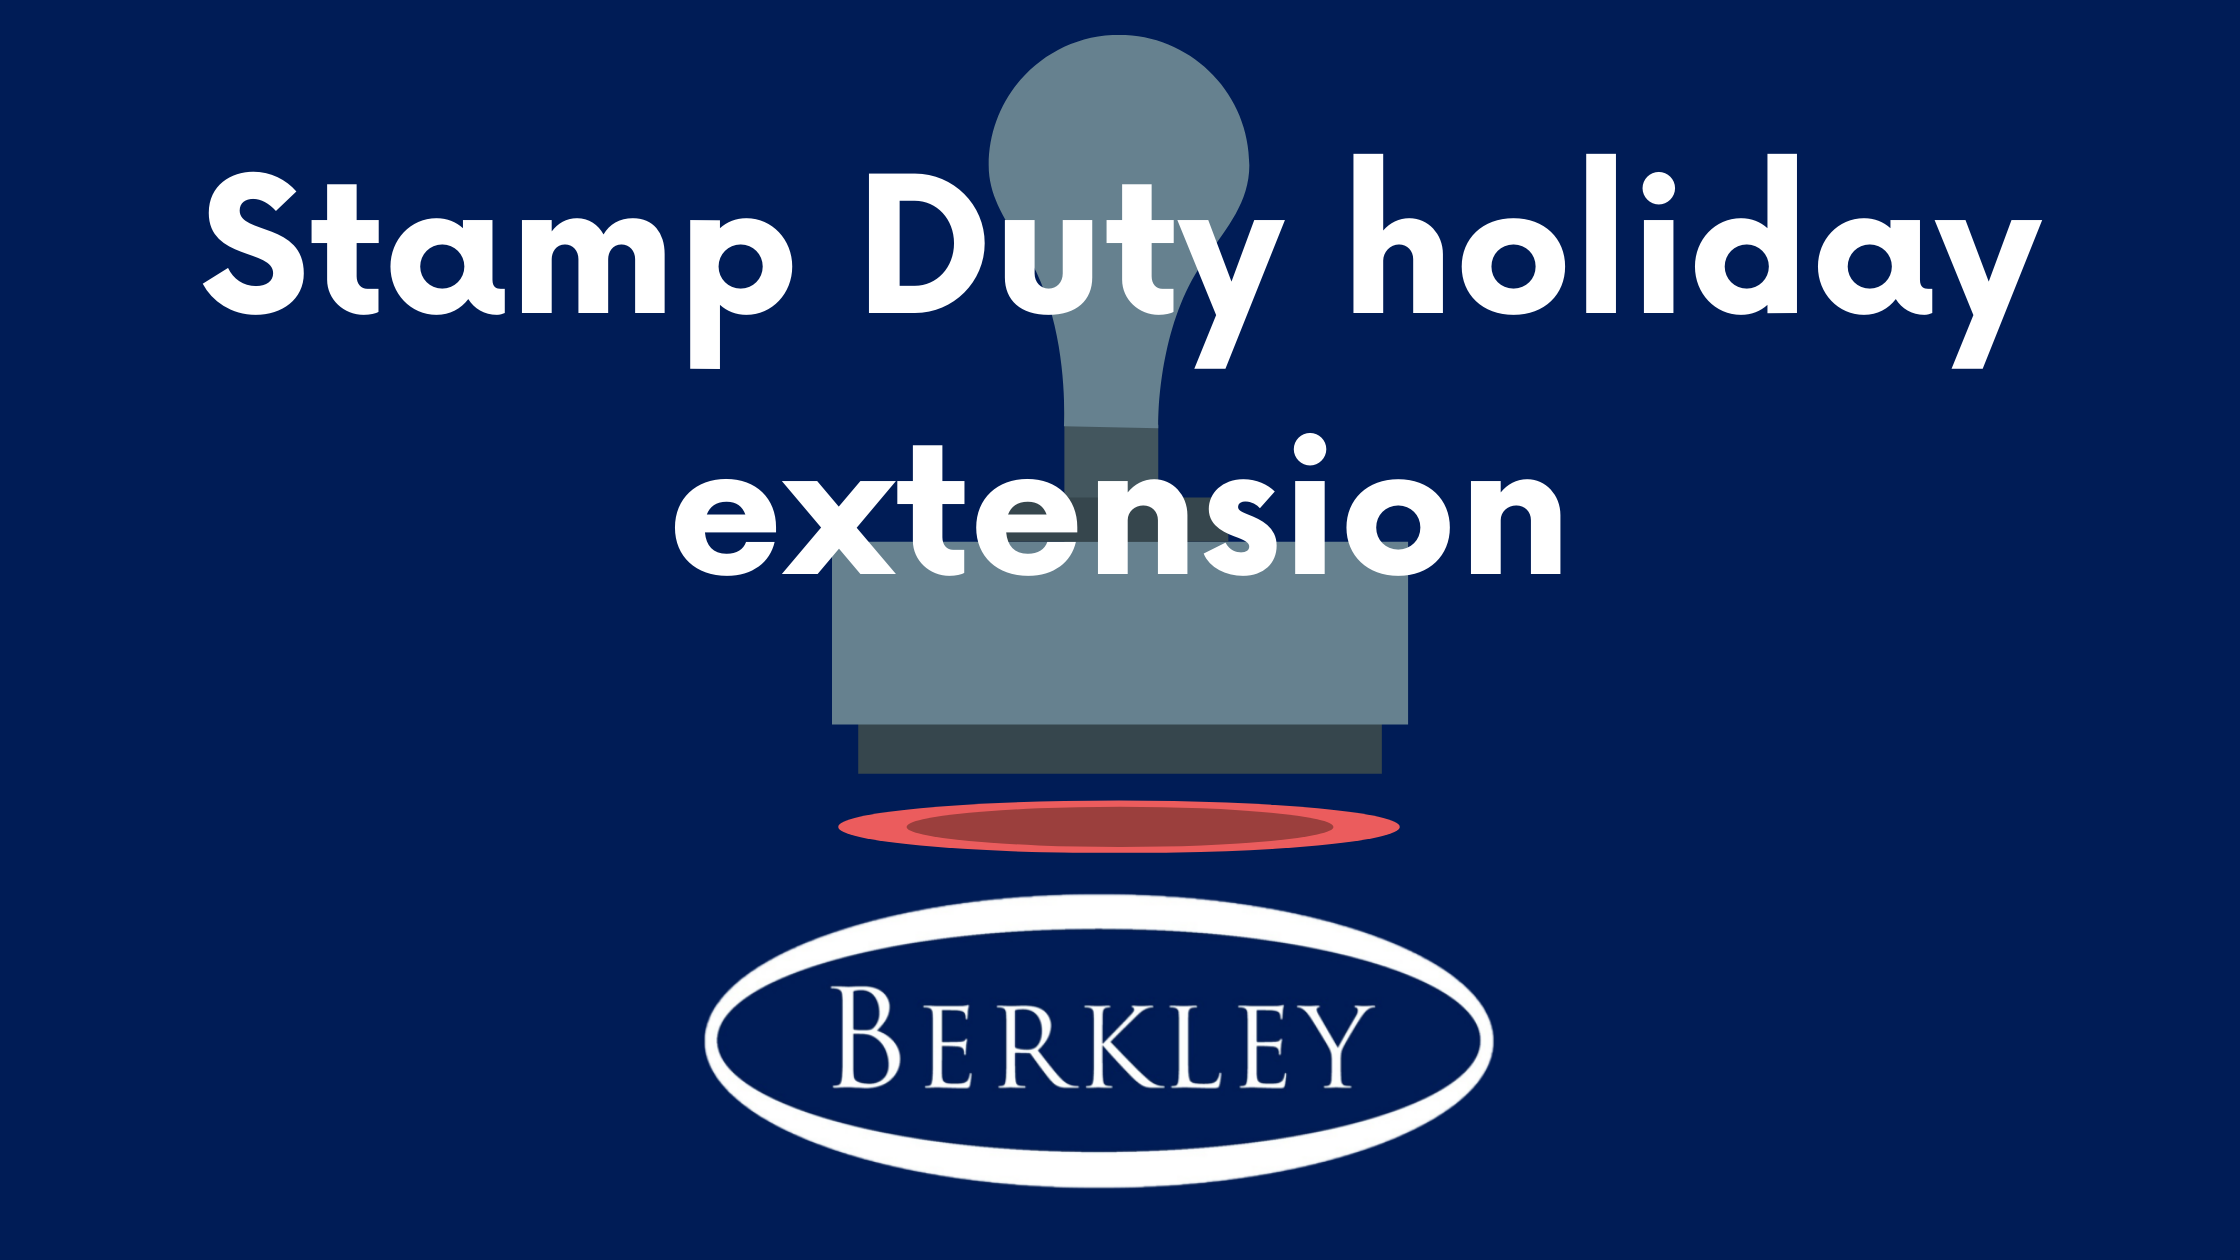 Stamp Duty holiday extension expected to be announced